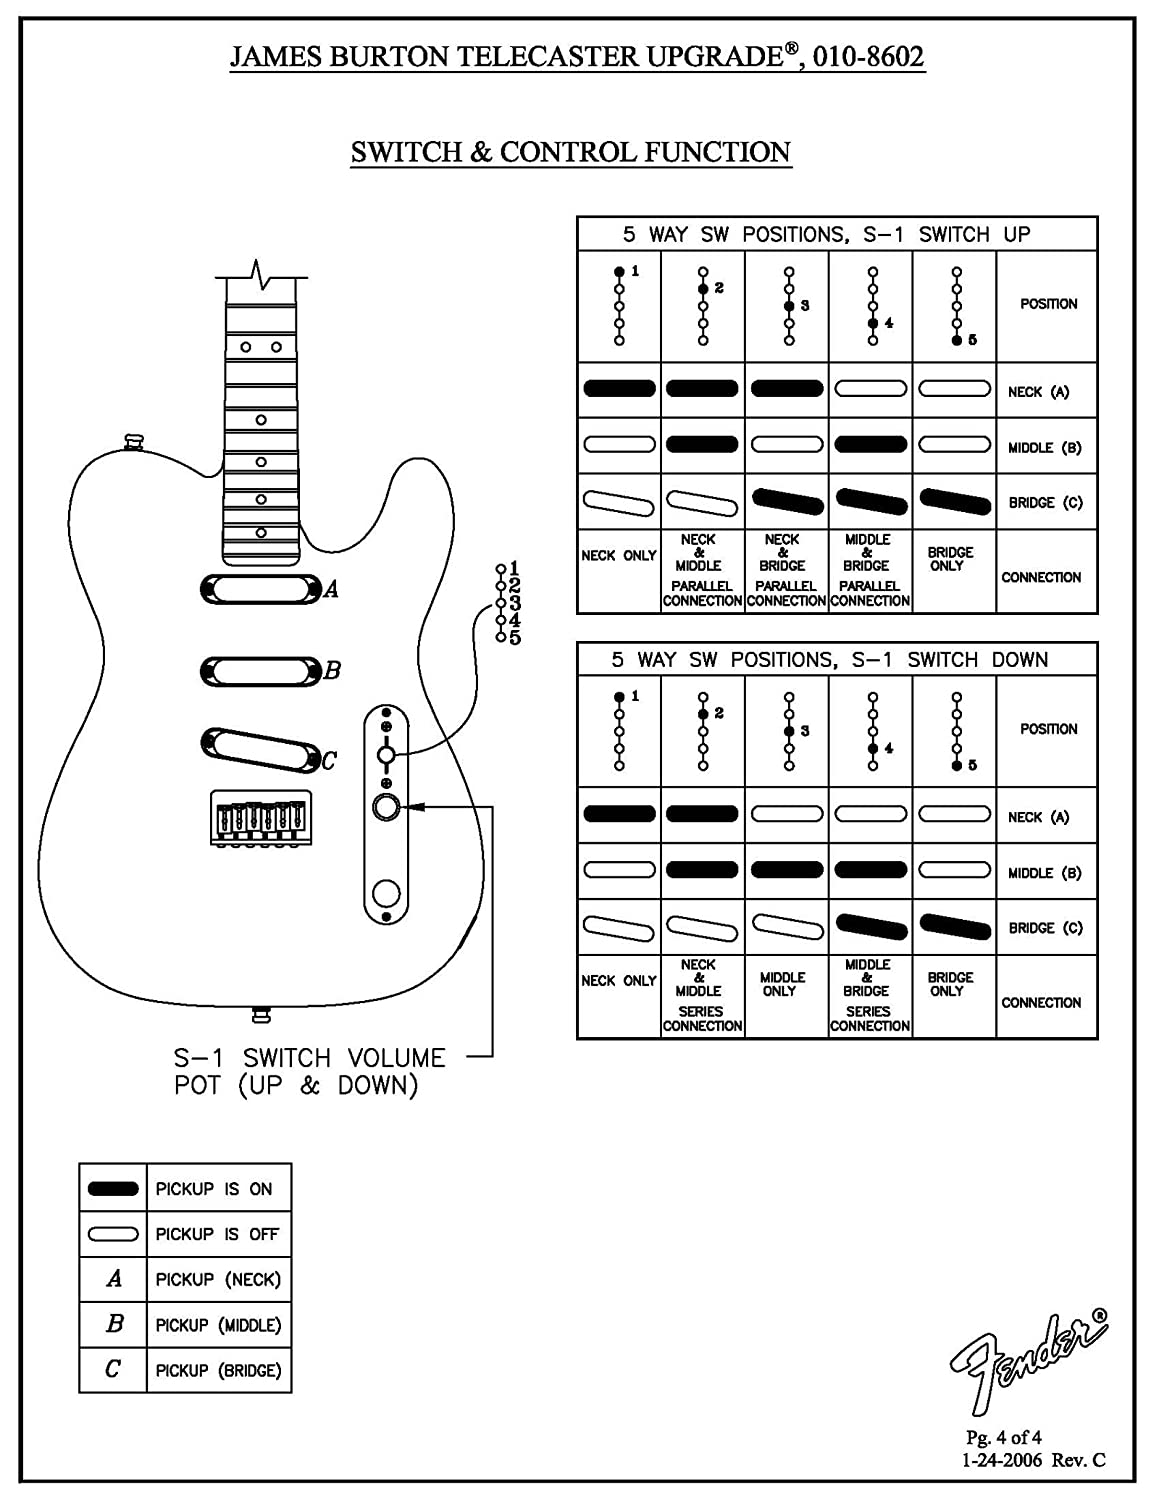 Fender Tele Telecaster James Burton Loaded 5 Way Control Image Wiring Switch Diagram Download Plate With S1 Chrome Musical Instruments